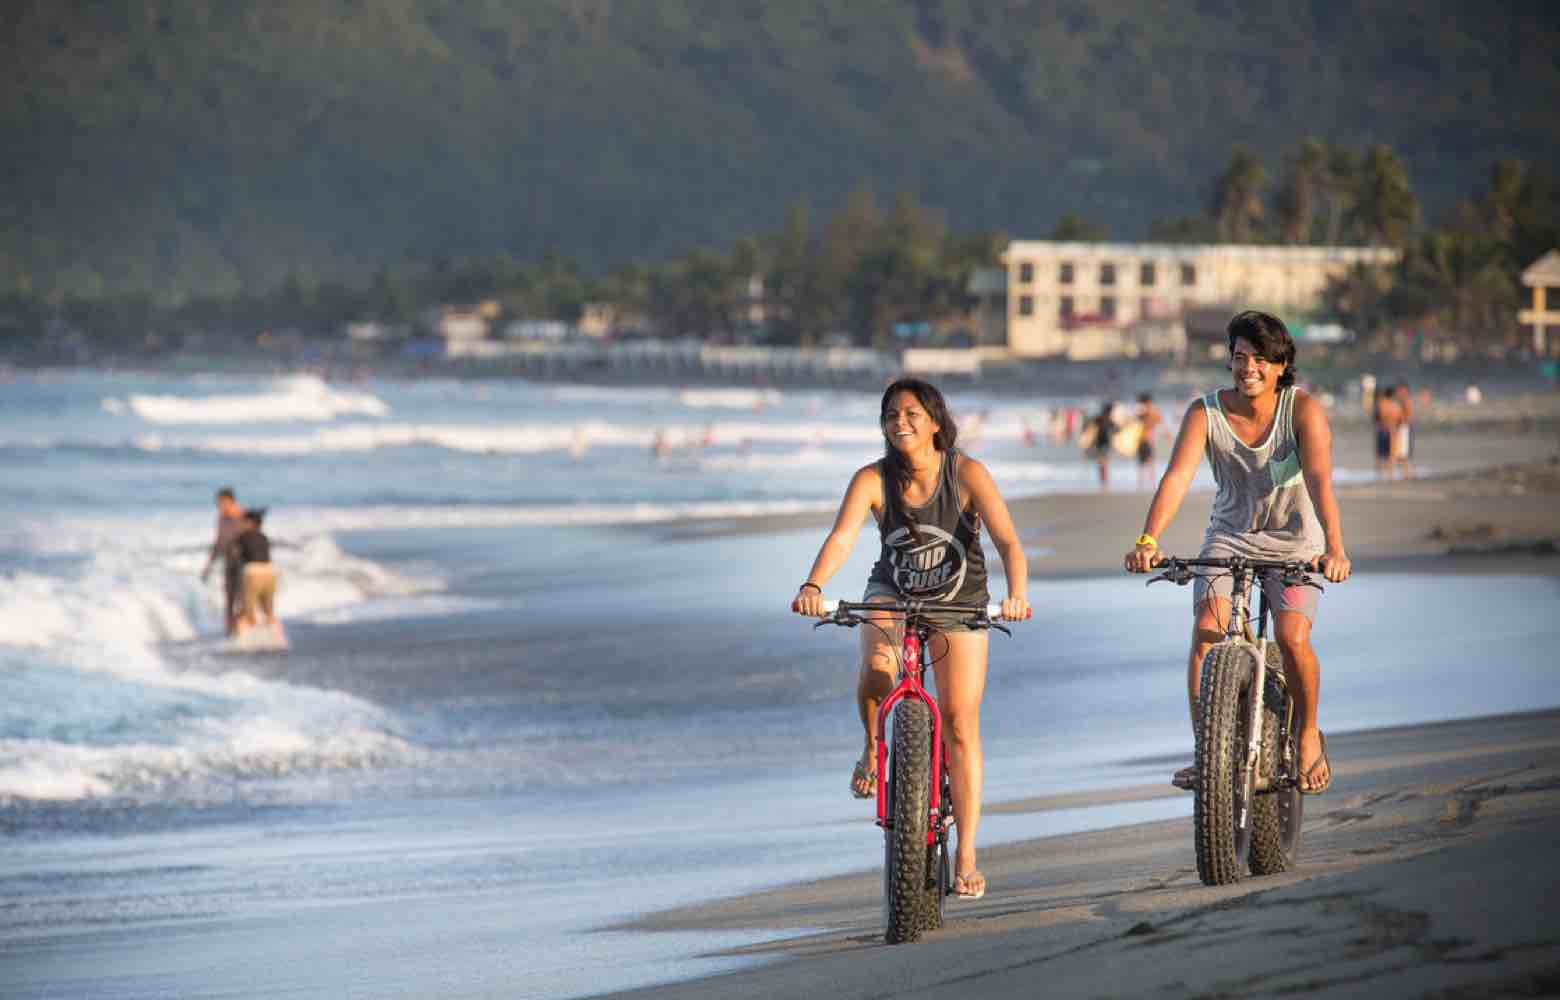 Baler - Exploring the Beach on Fat Bikes